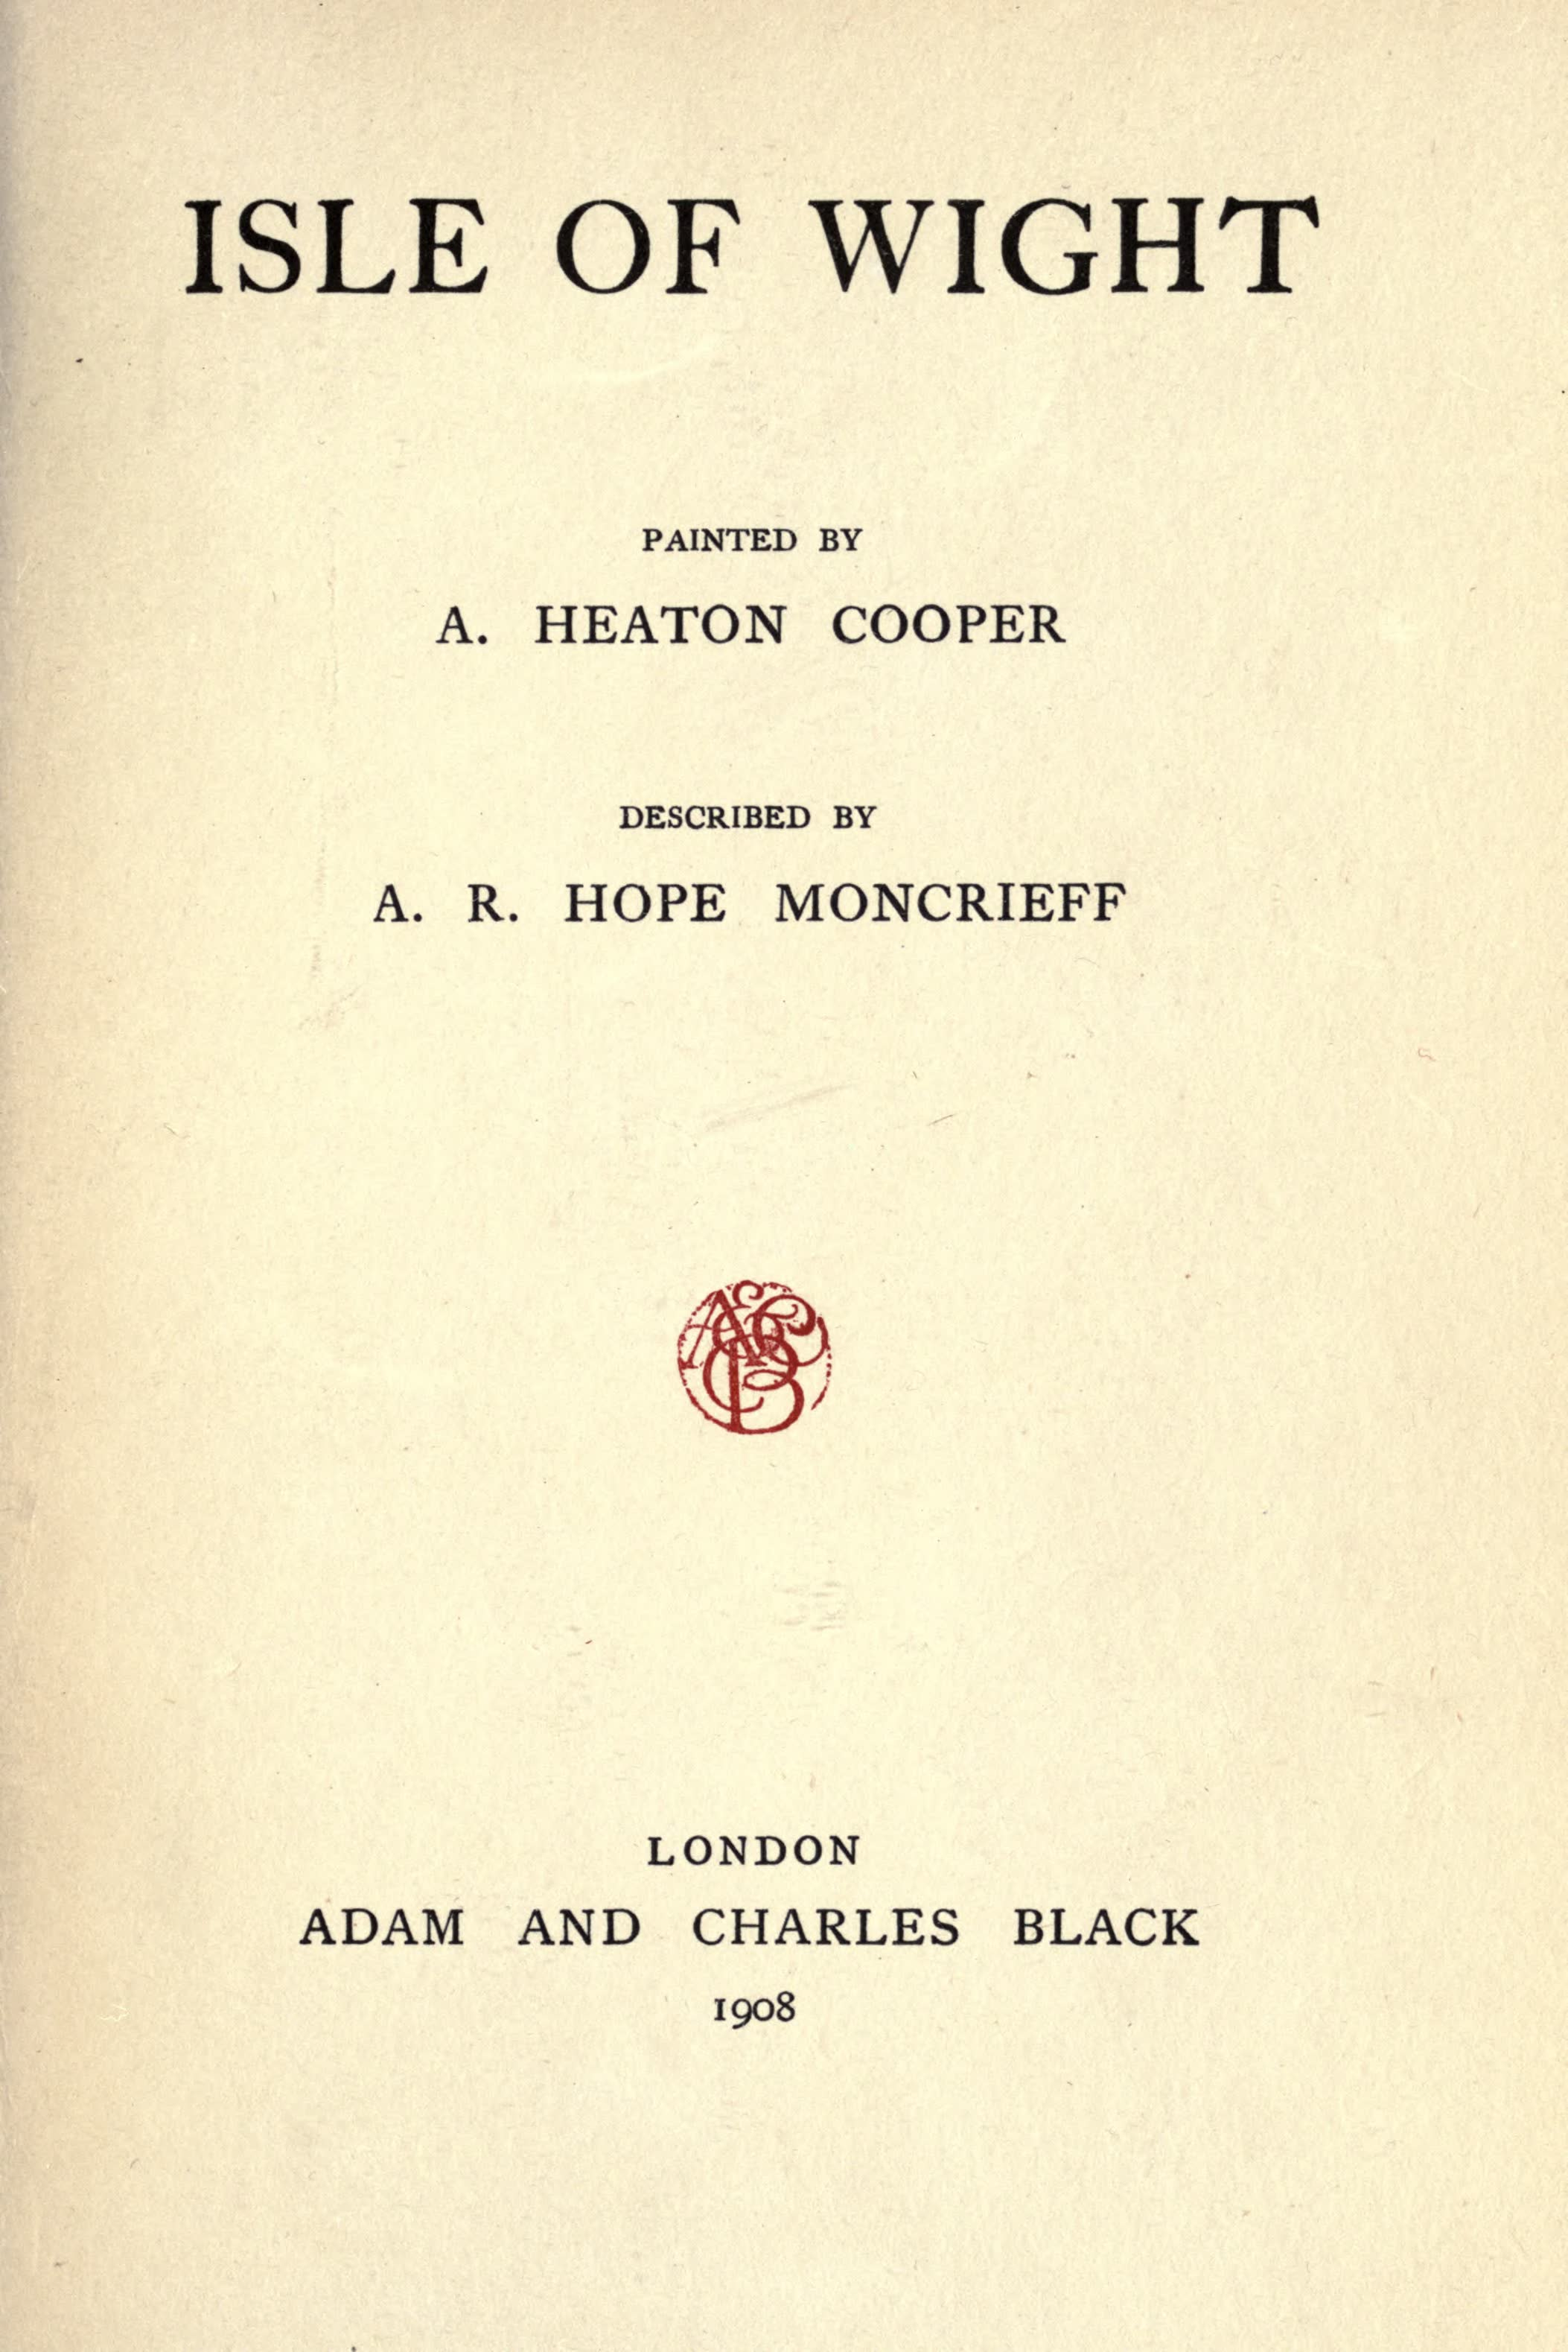 Isle of Wight Painted and Described - Title Page (1908)